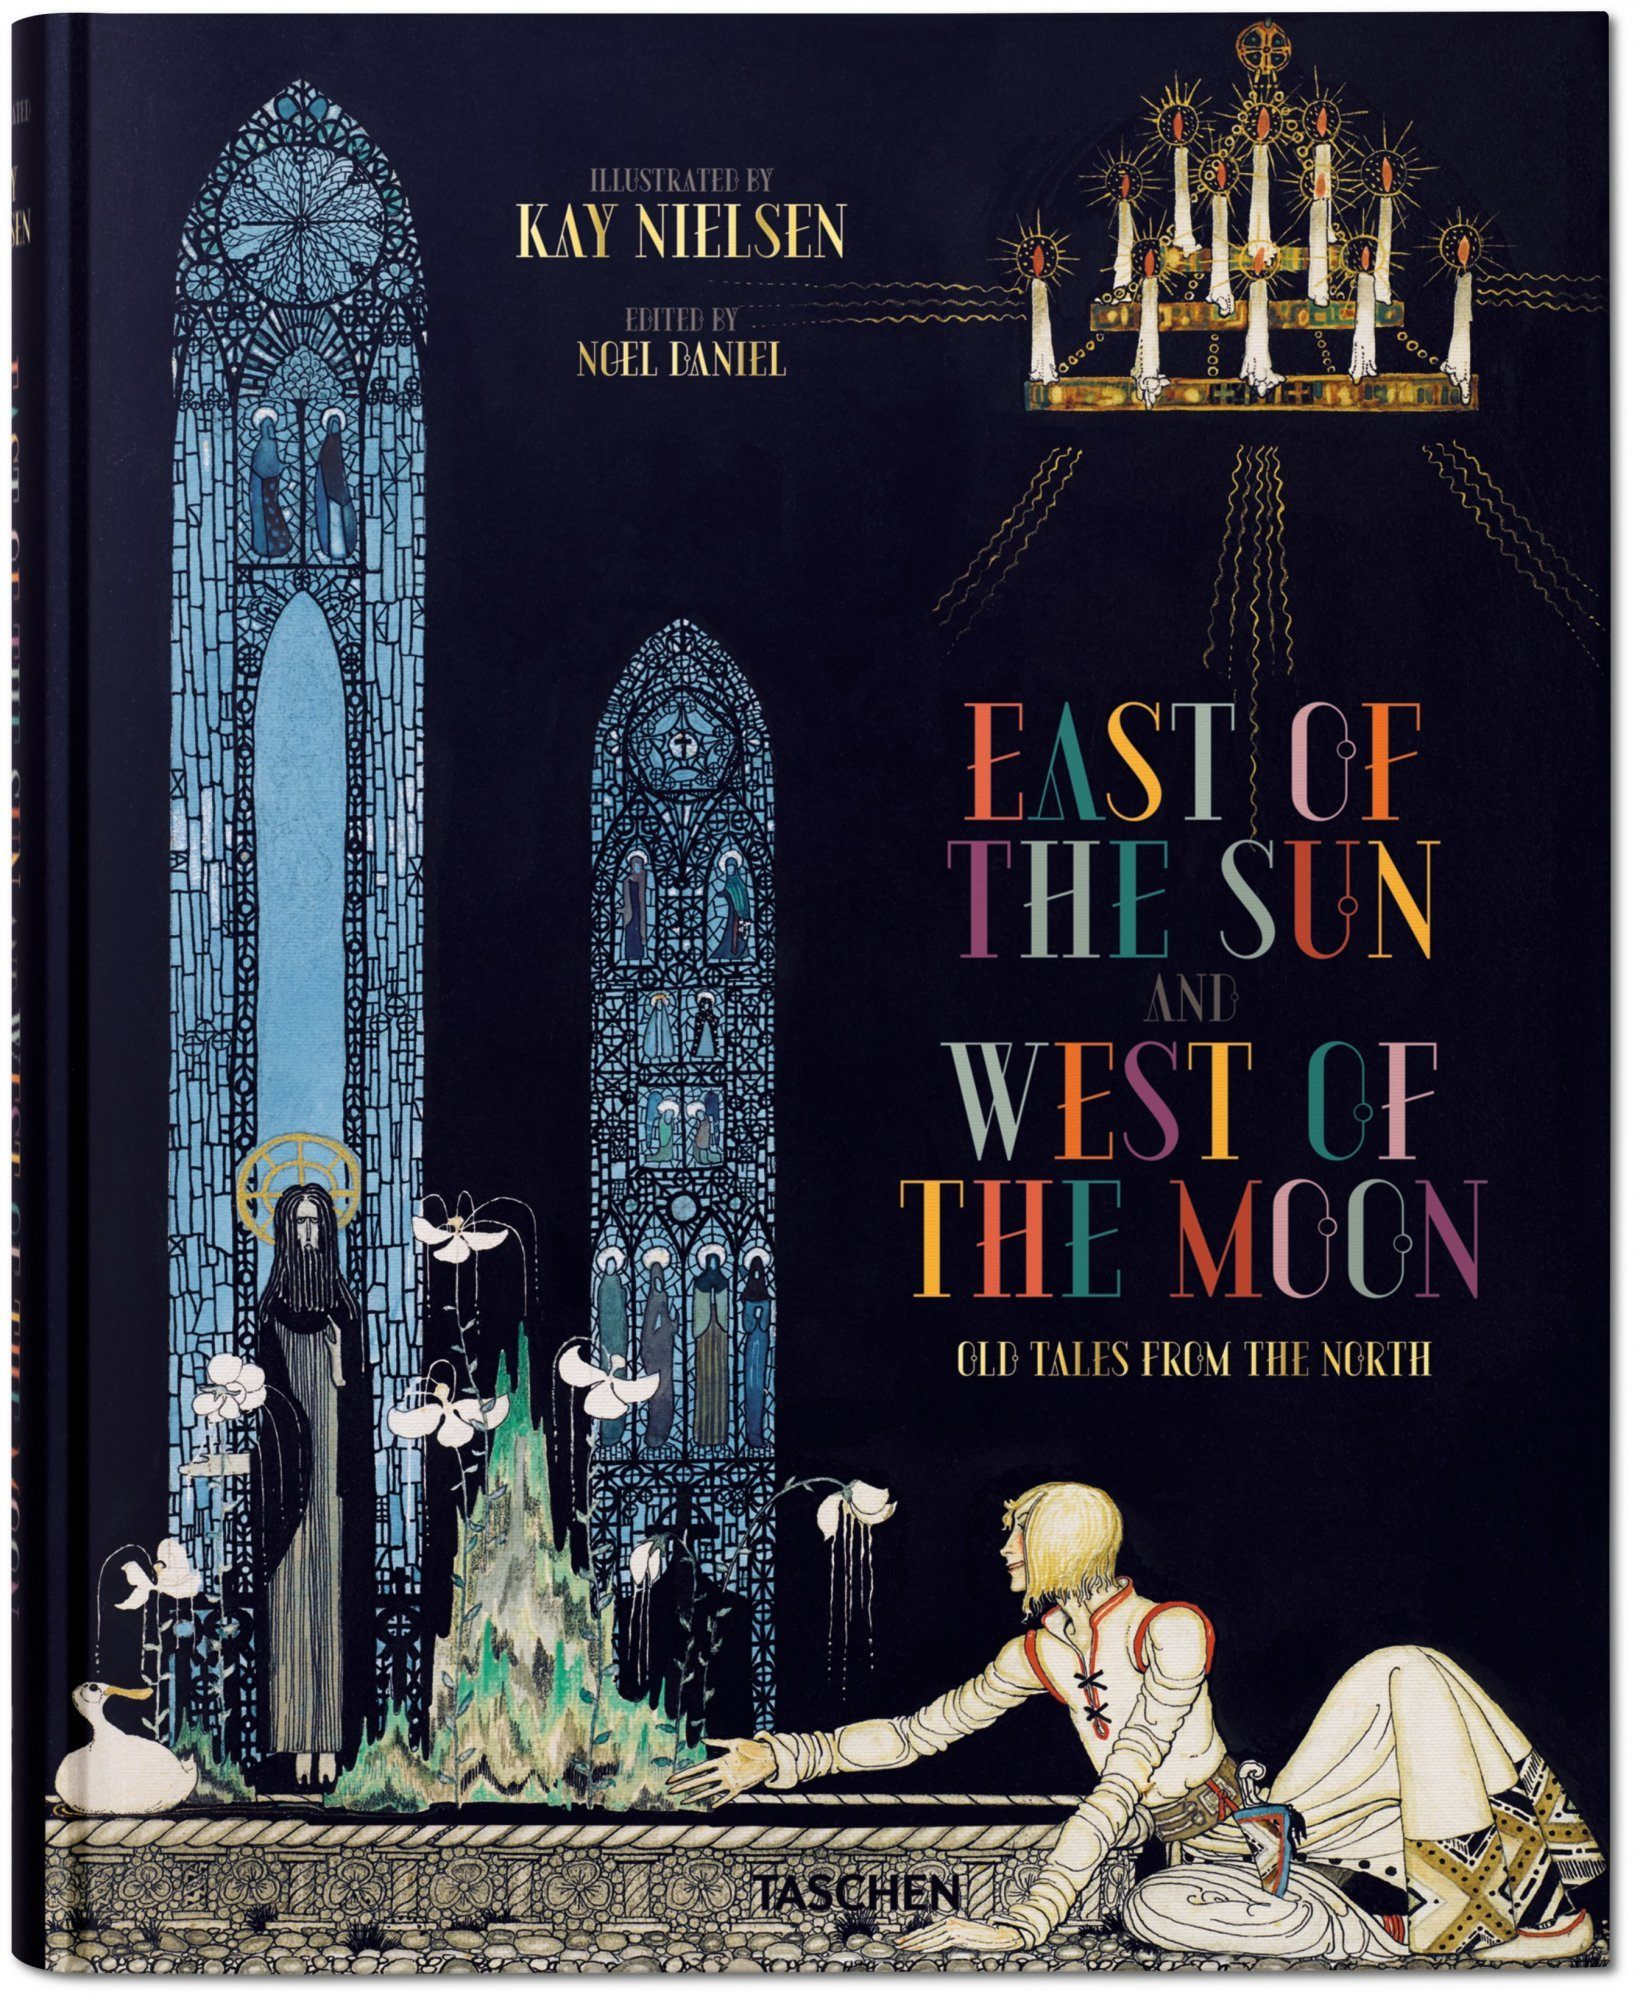 BI_151222_nielsen_east_of_the_sun_west_of_the_moon_cover